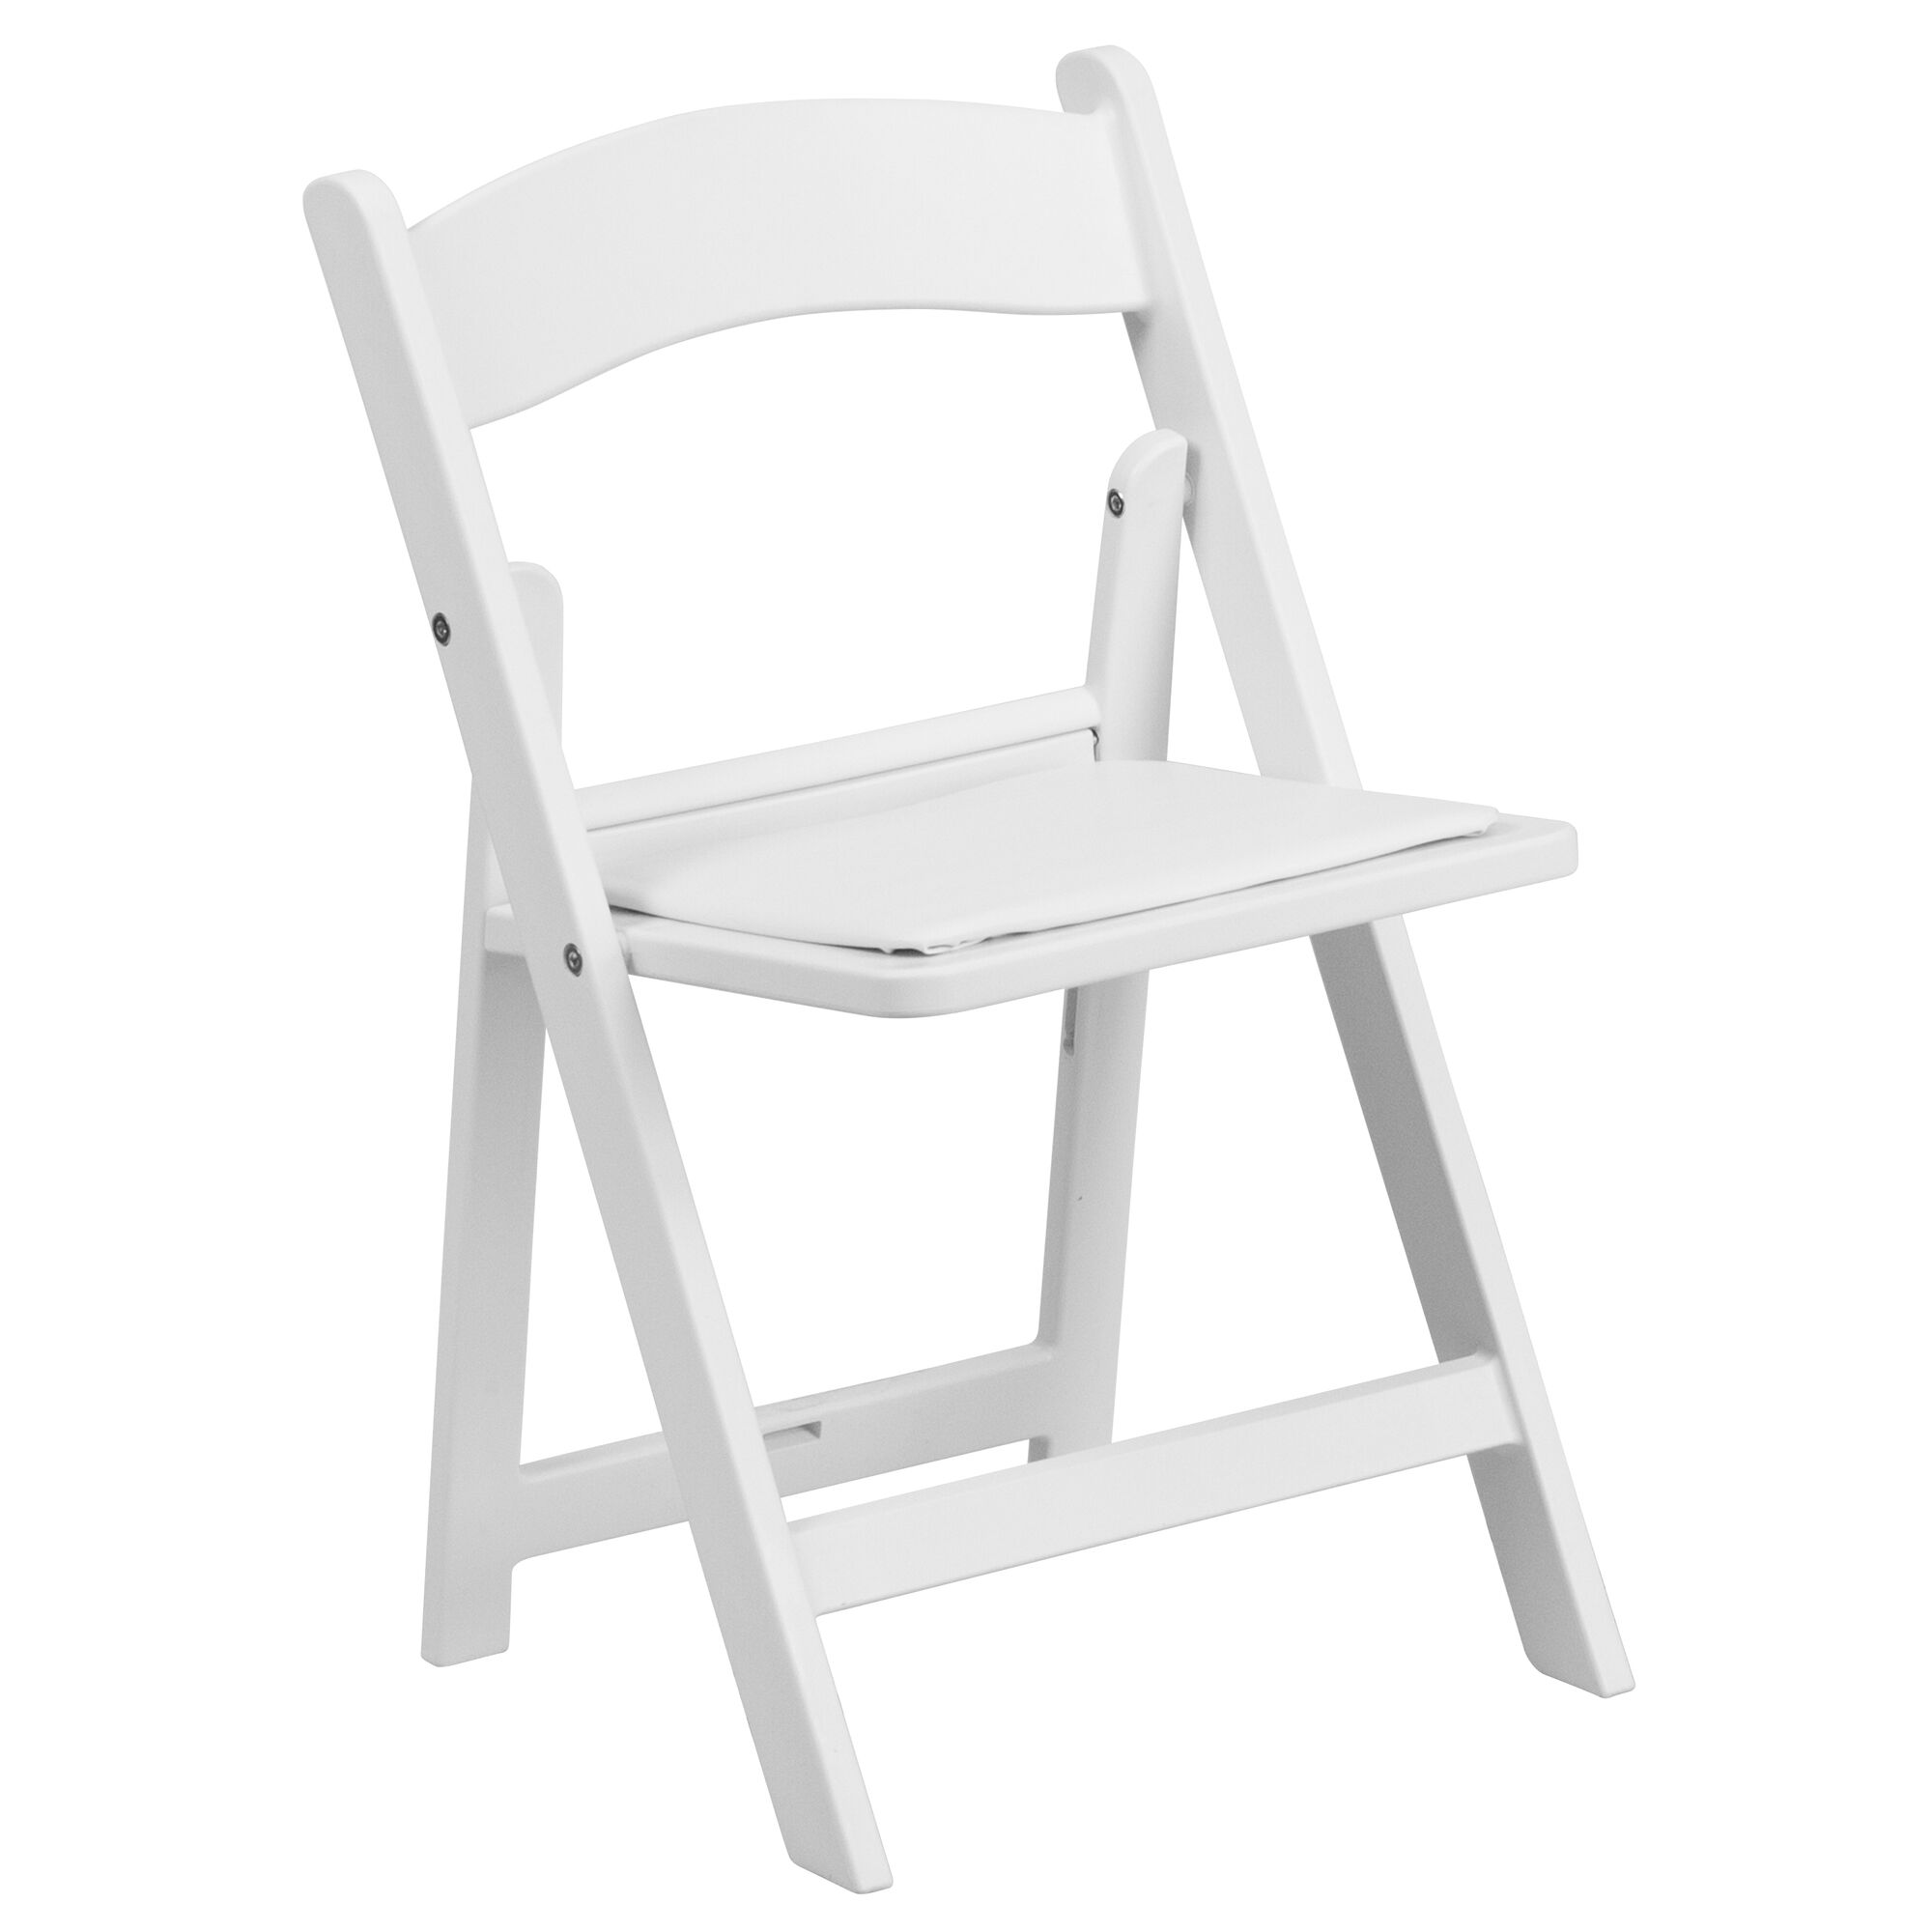 Remarkable Kids White Resin Folding Chair With White Vinyl Padded Seat Theyellowbook Wood Chair Design Ideas Theyellowbookinfo